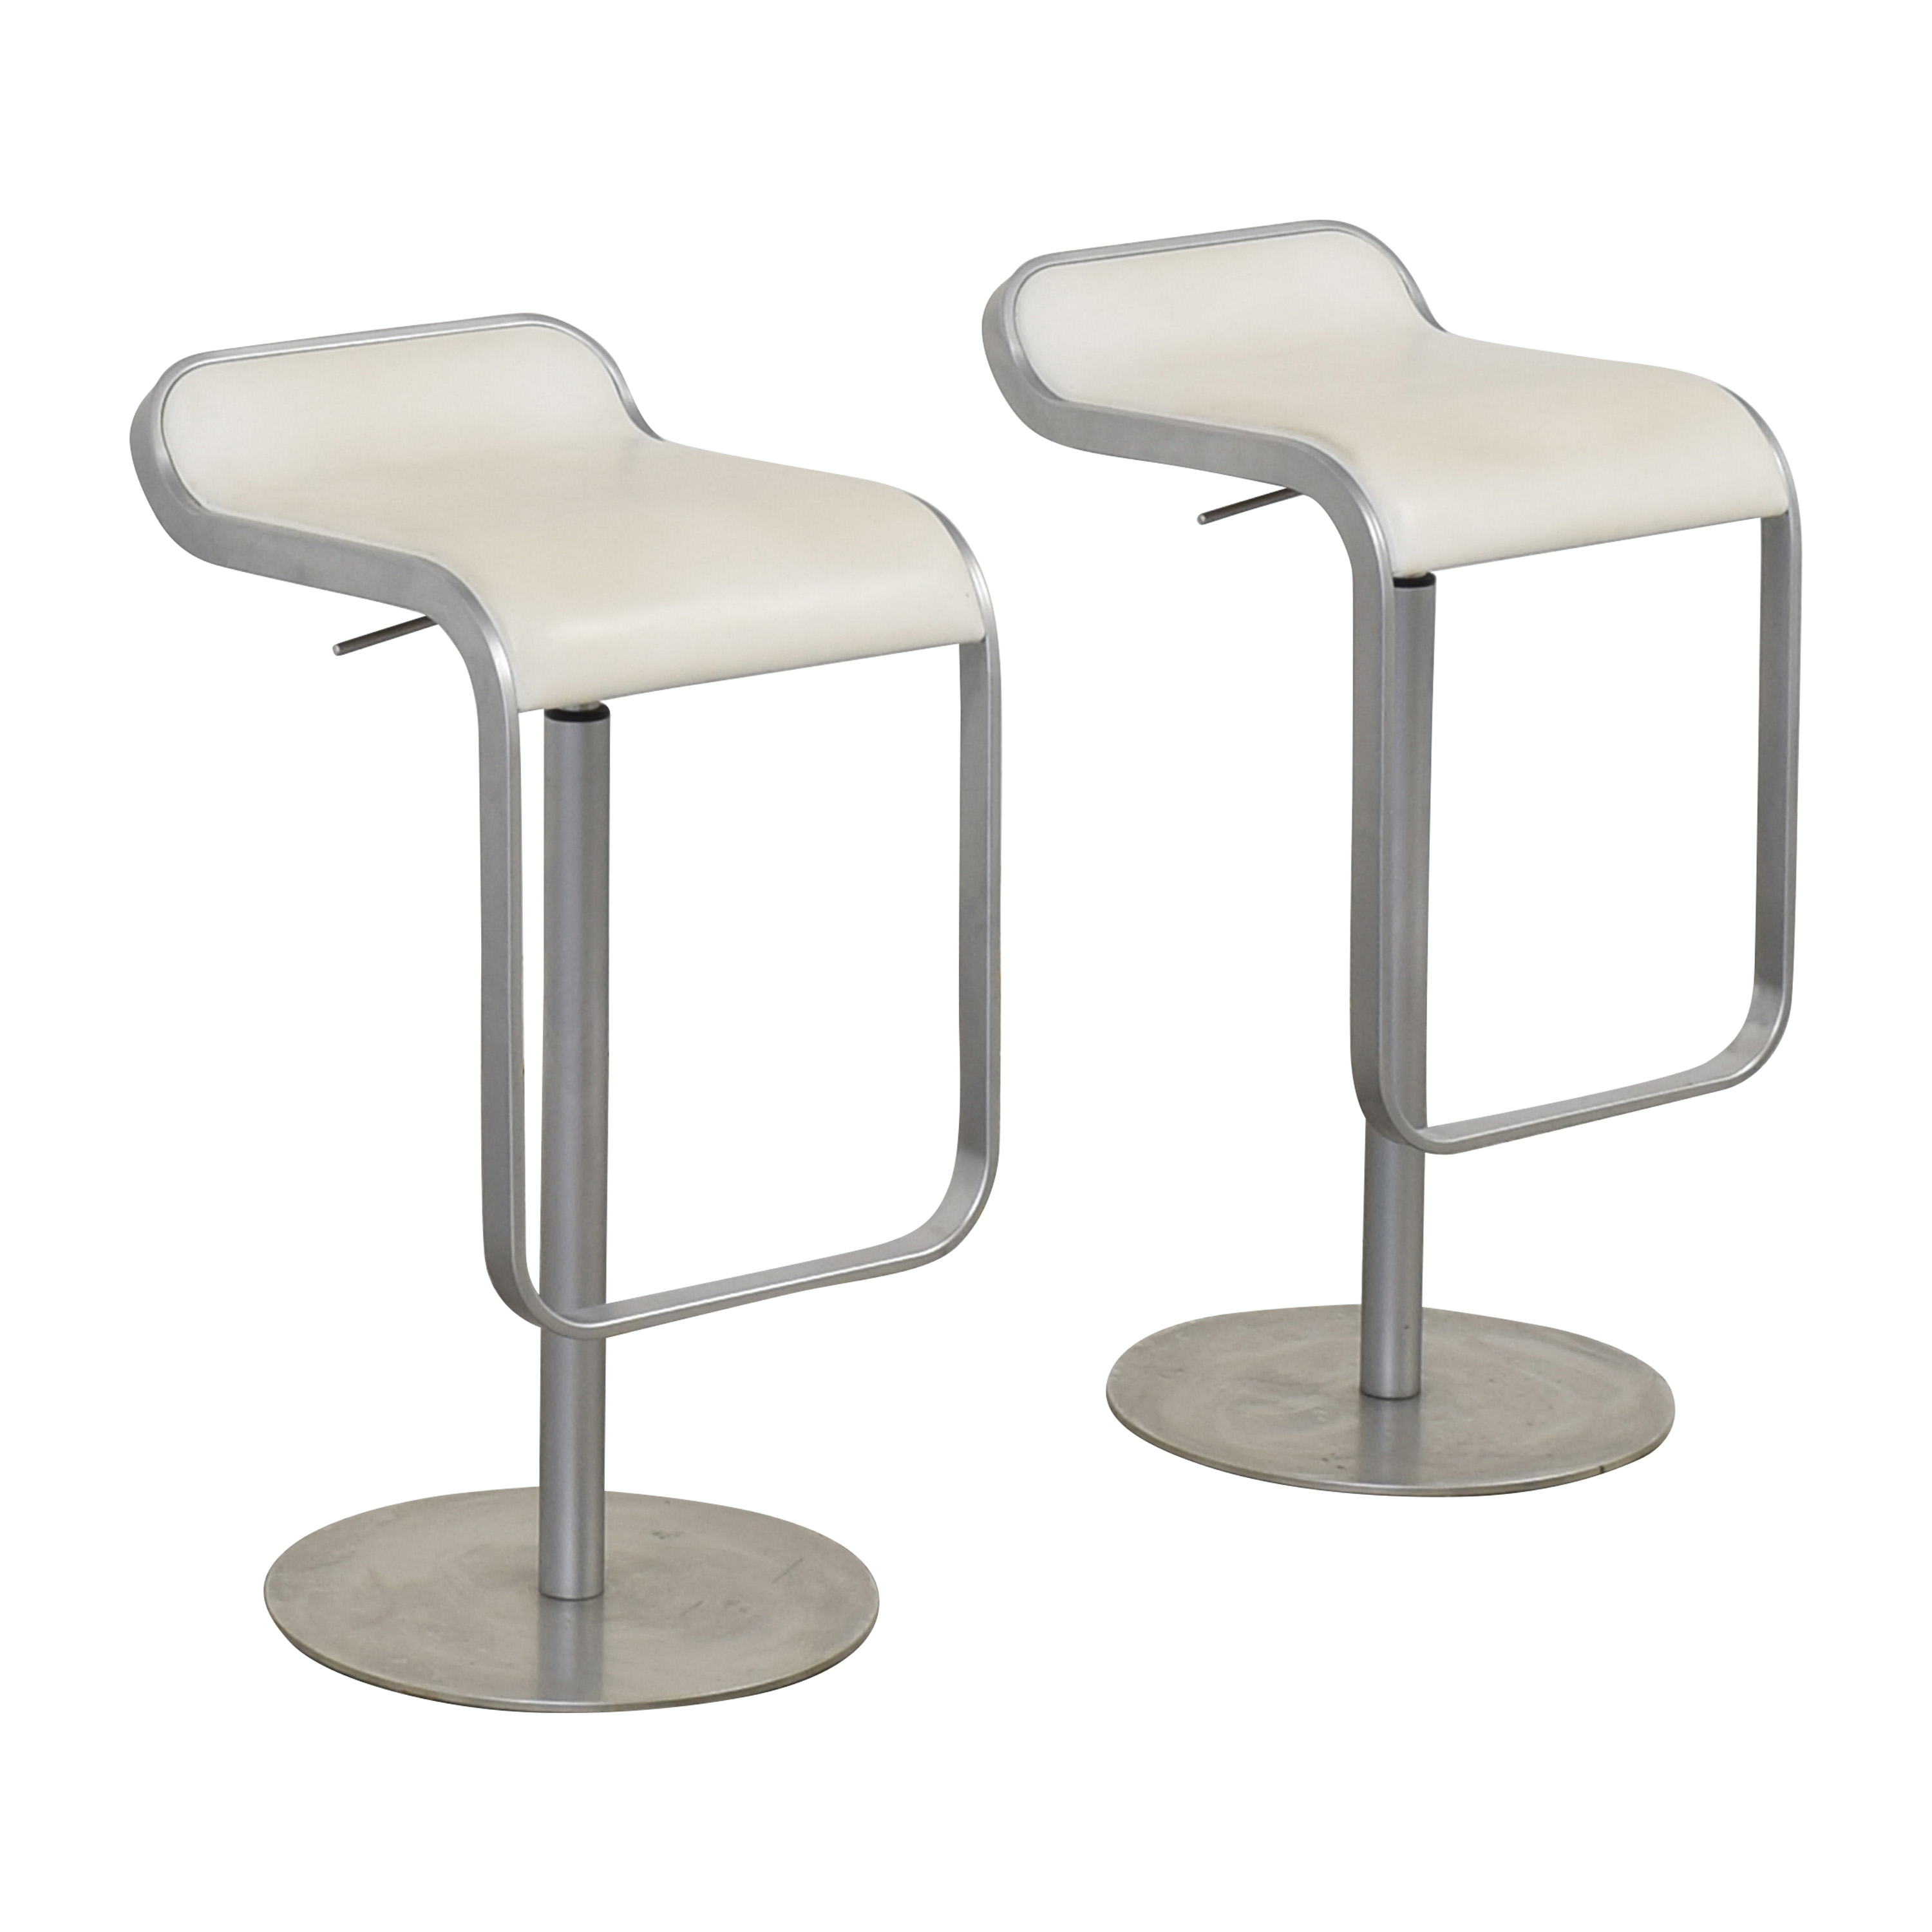 Design Within Reach LEM Piston Stools / Chairs